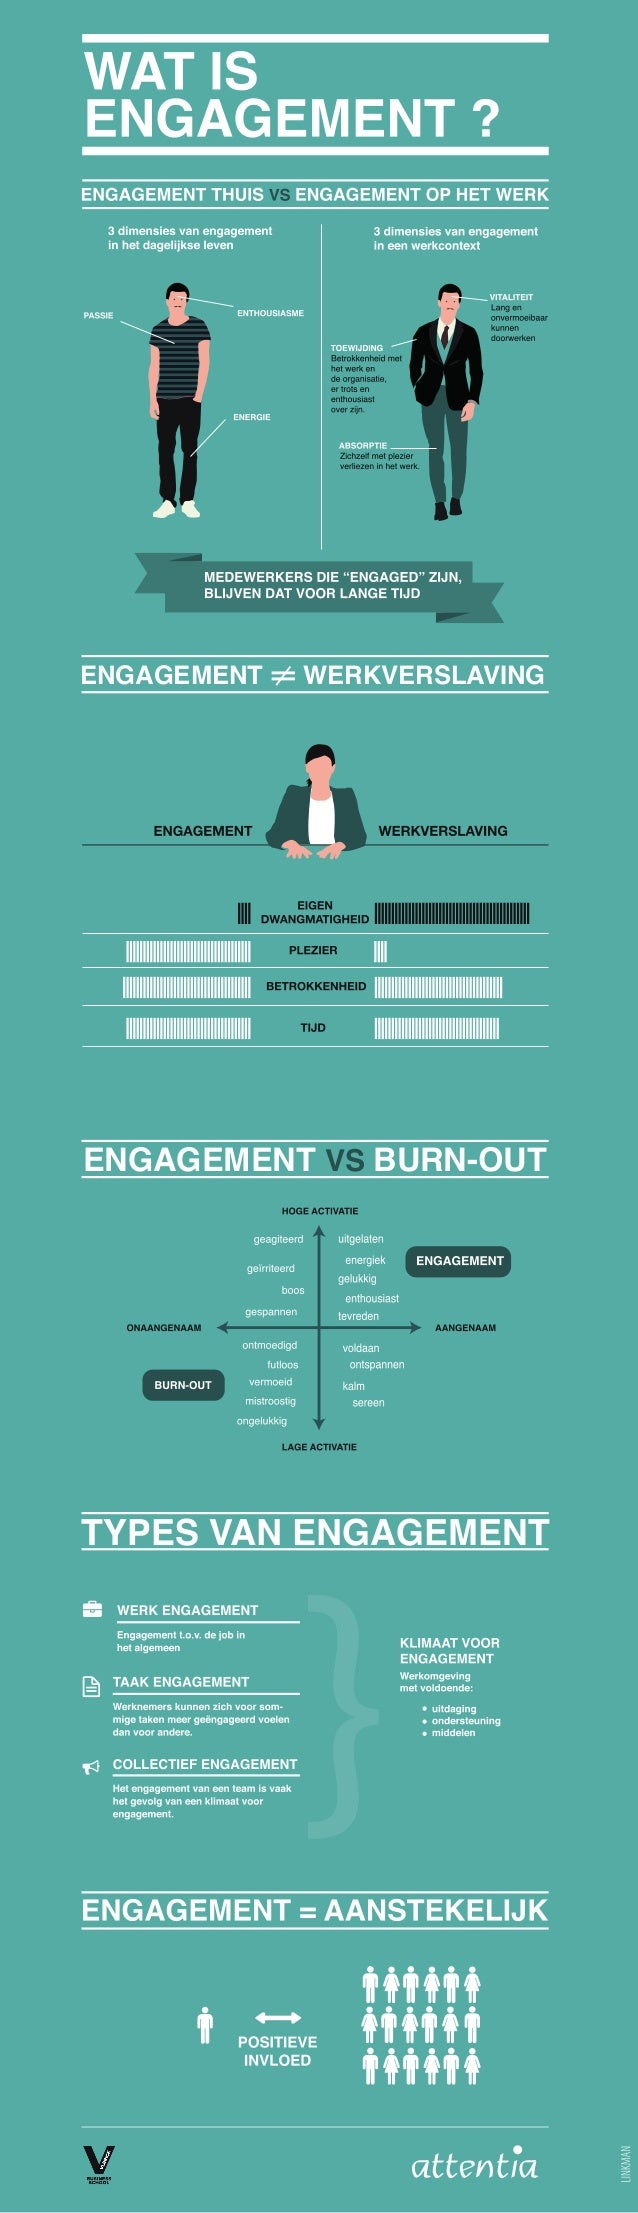 Wat is engagement?